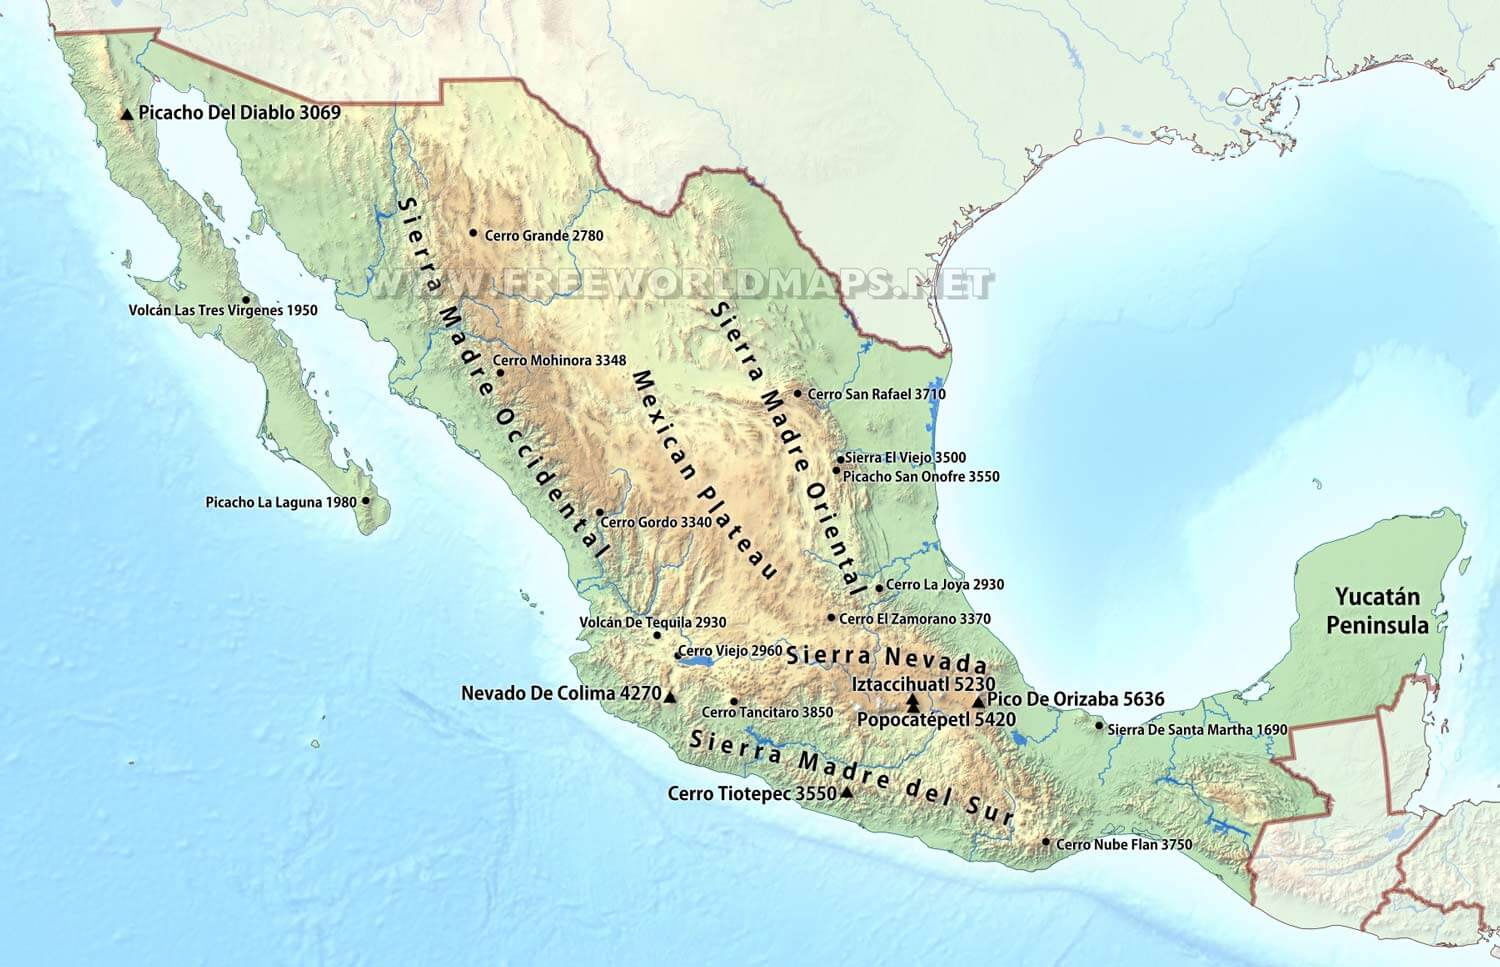 mexico rivers map showing the major rivers and hydrography of mexico mexico mountains